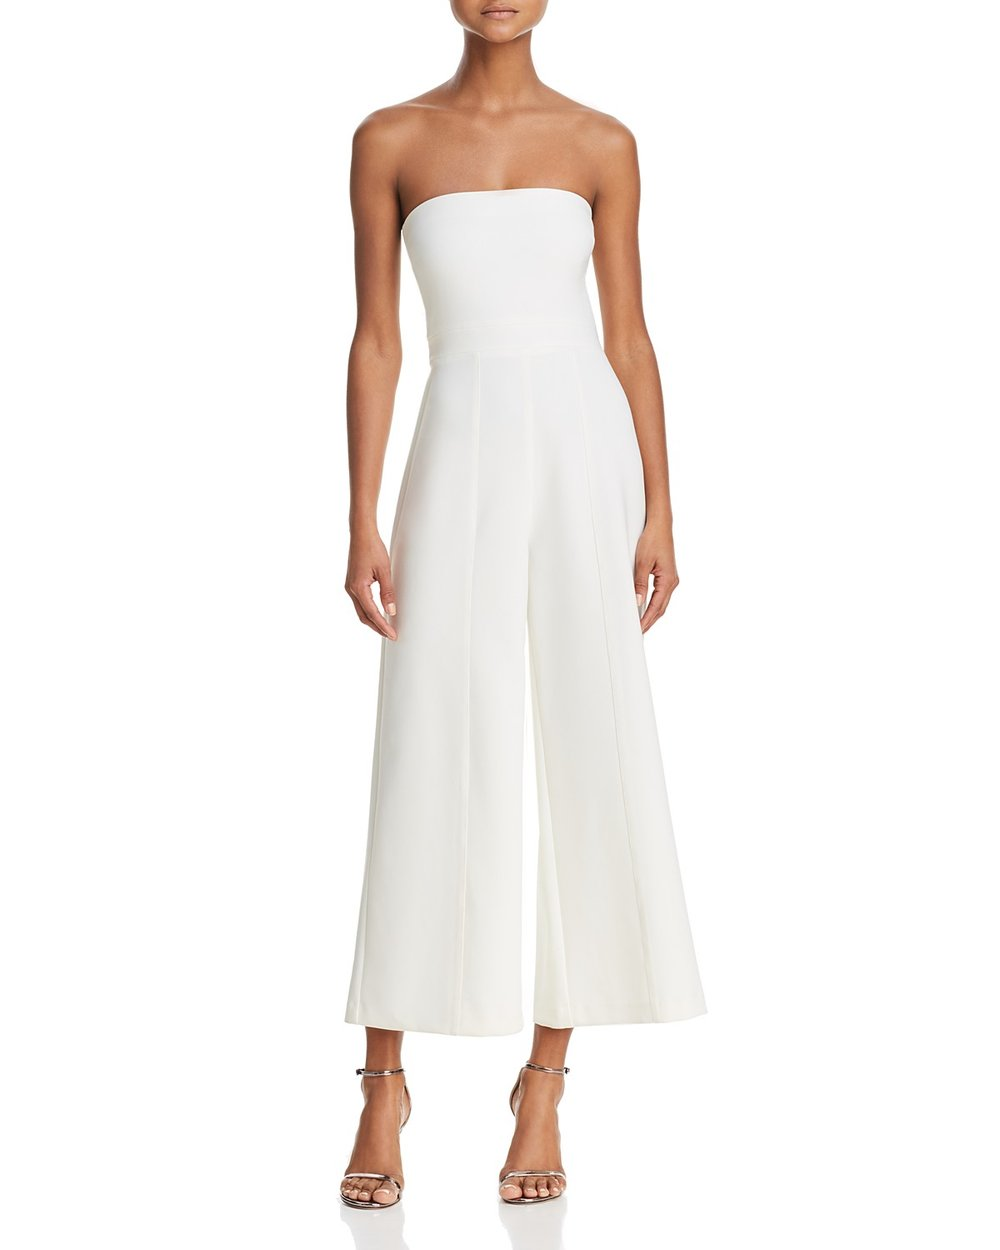 Isla Strapless jumpsuit, $248, Likely,  Bloomingdales